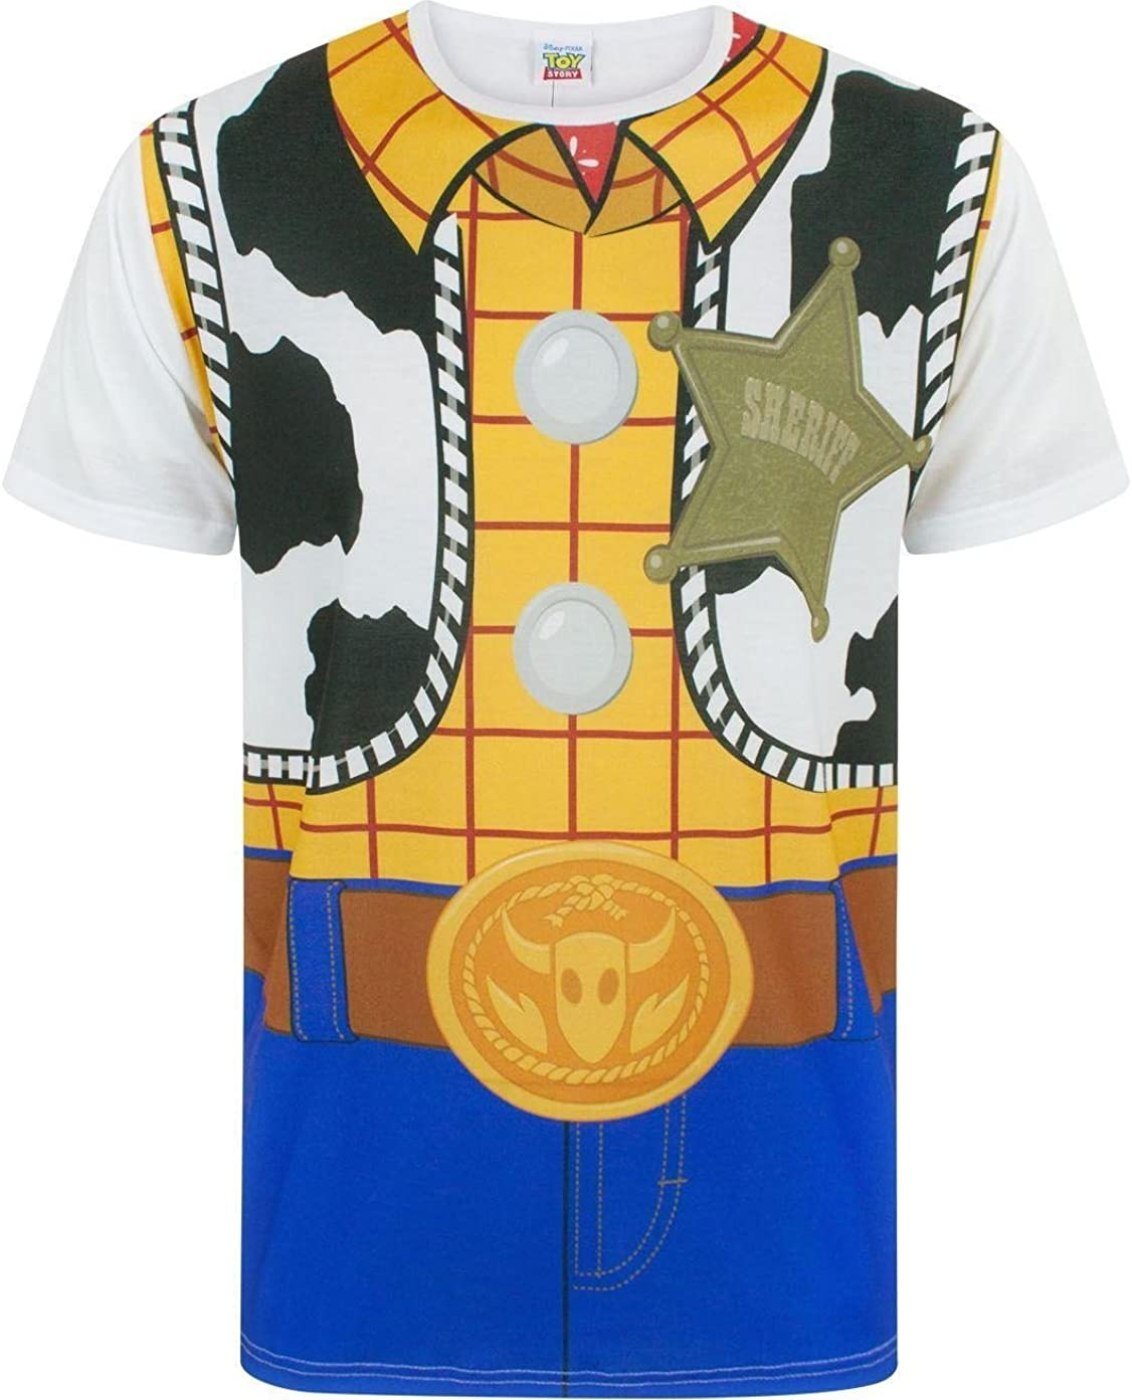 Disney Toy Story Woody Cowboy Costume Outfit Men's Adults Novelty T-Shirt